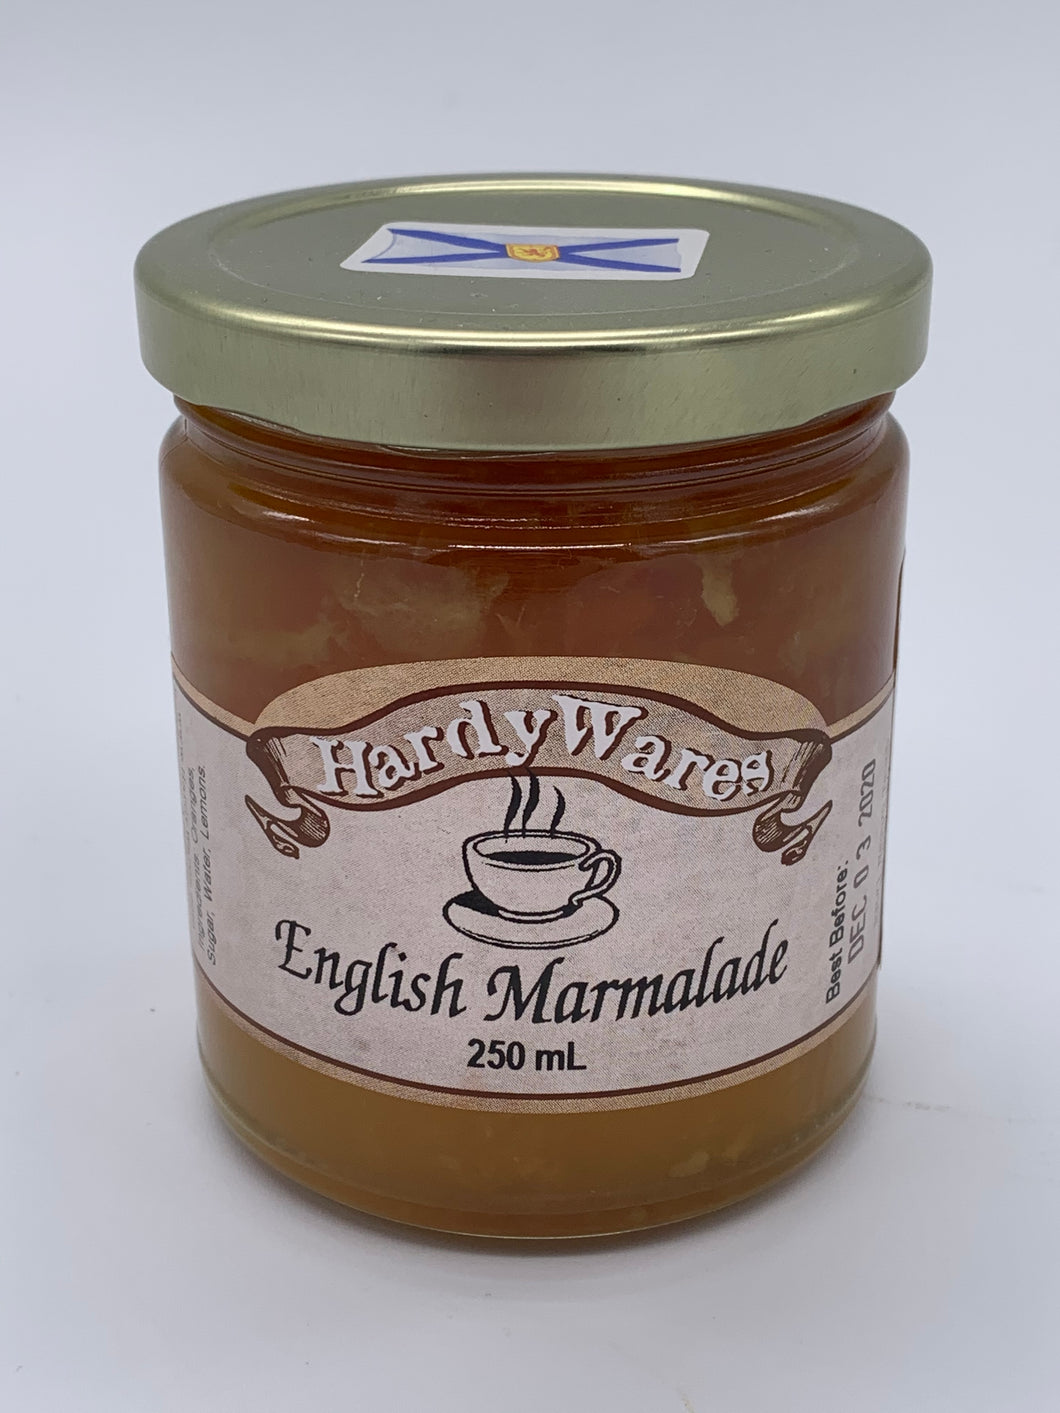 Hardywares English Marmalade